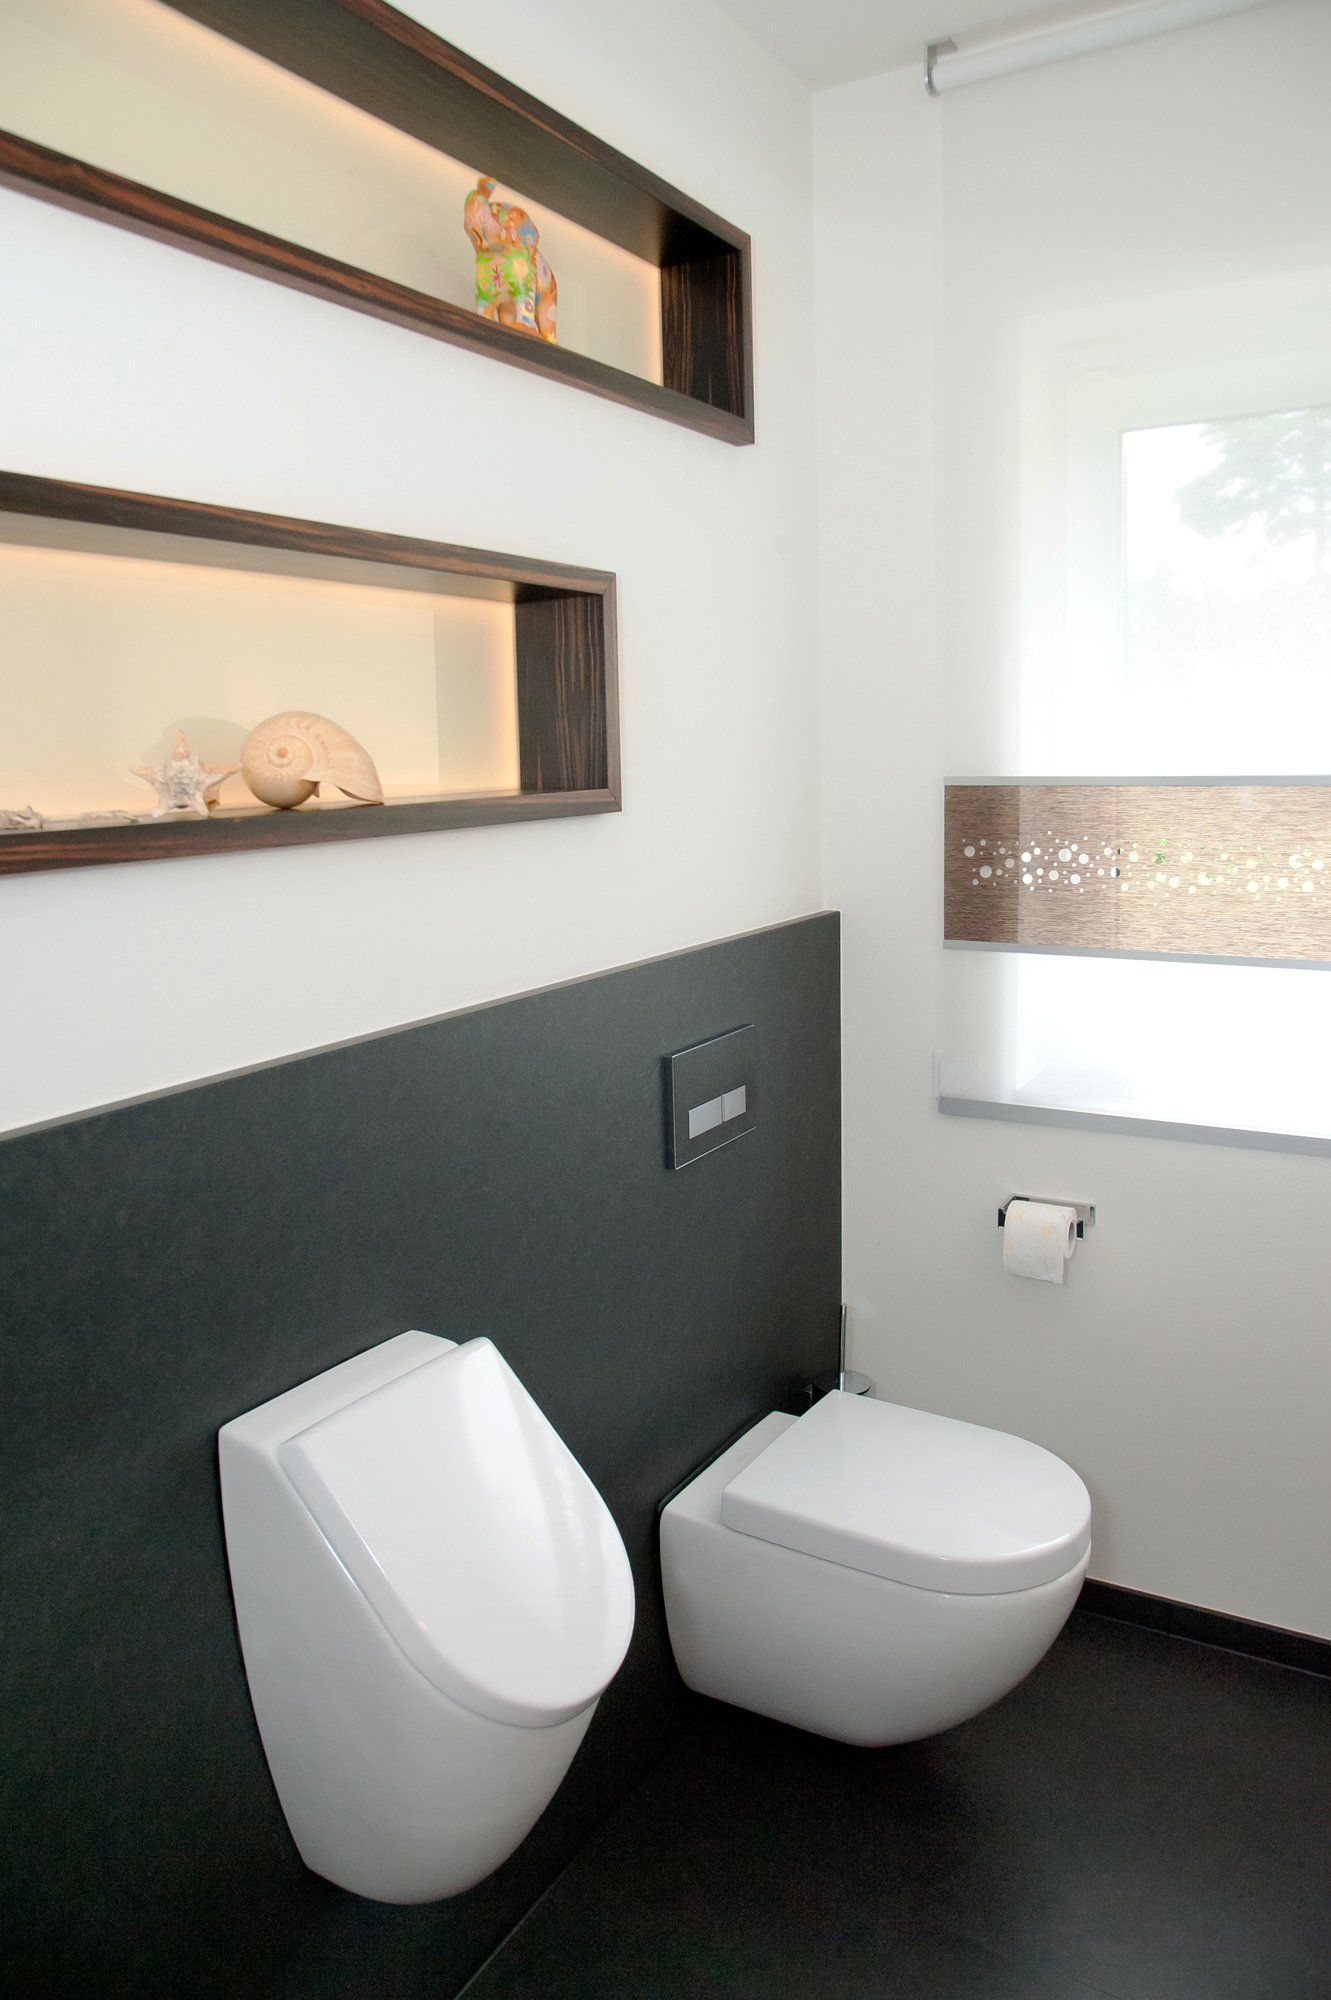 Makassar, Toiletten and Modern on Pinterest